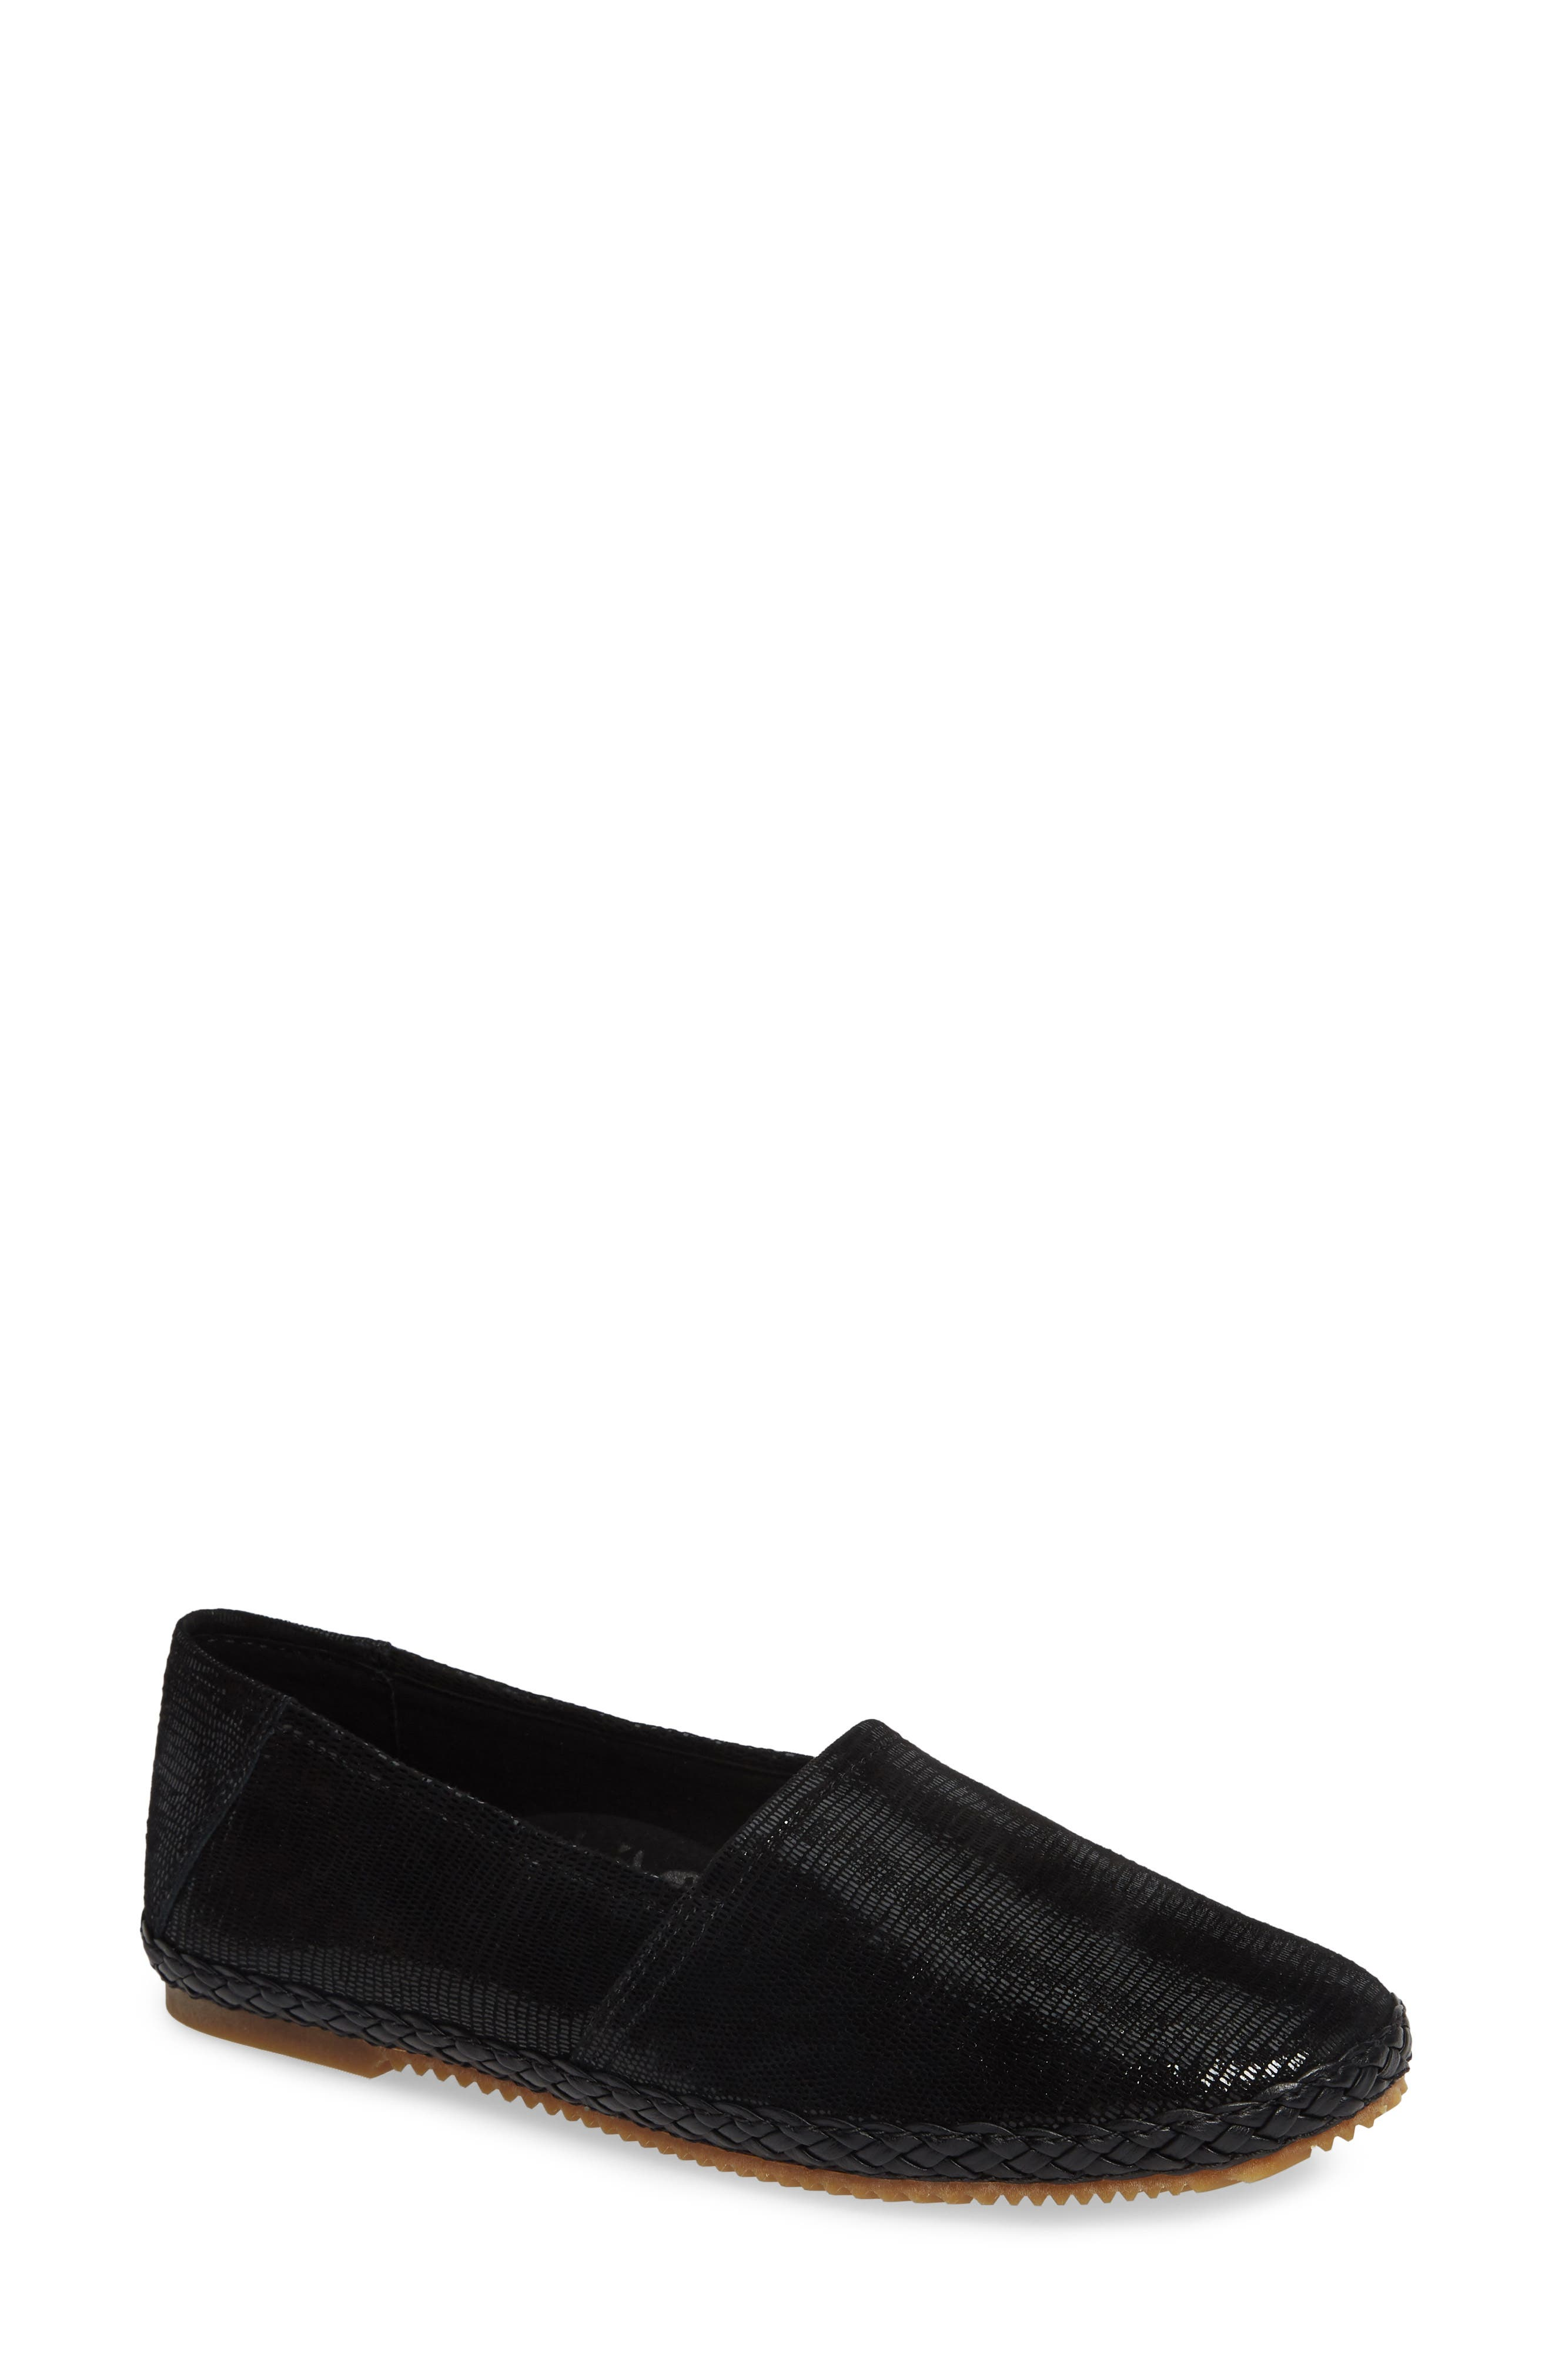 AETREX Kylie Flat, Main, color, BLACK SNAKE LEATHER